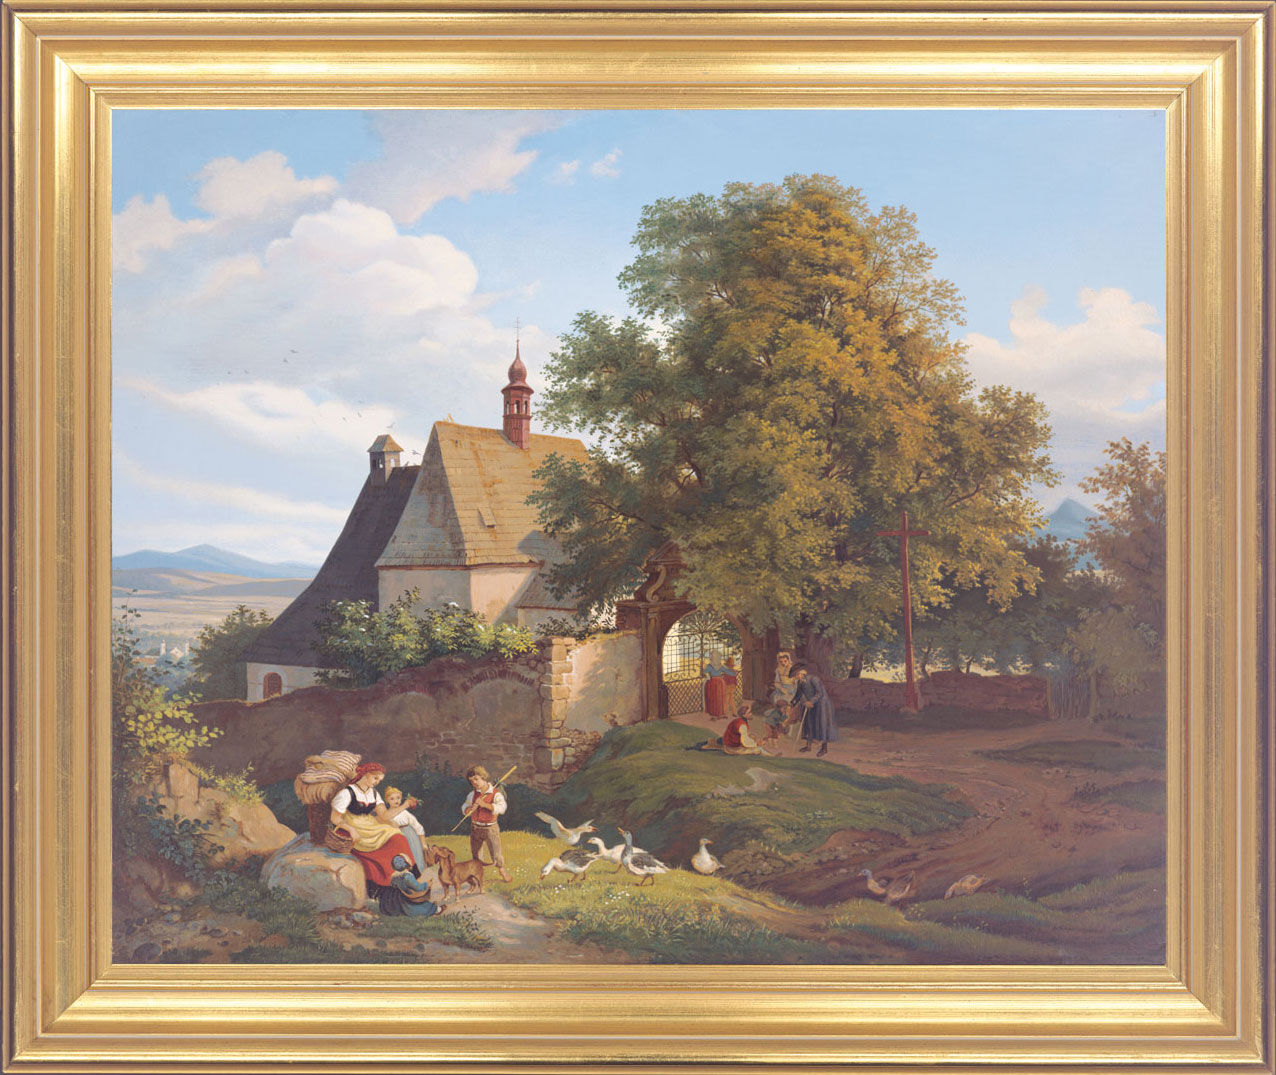 Painting 'St. Anna's Church in Krupka, Czech Republic' (1836)